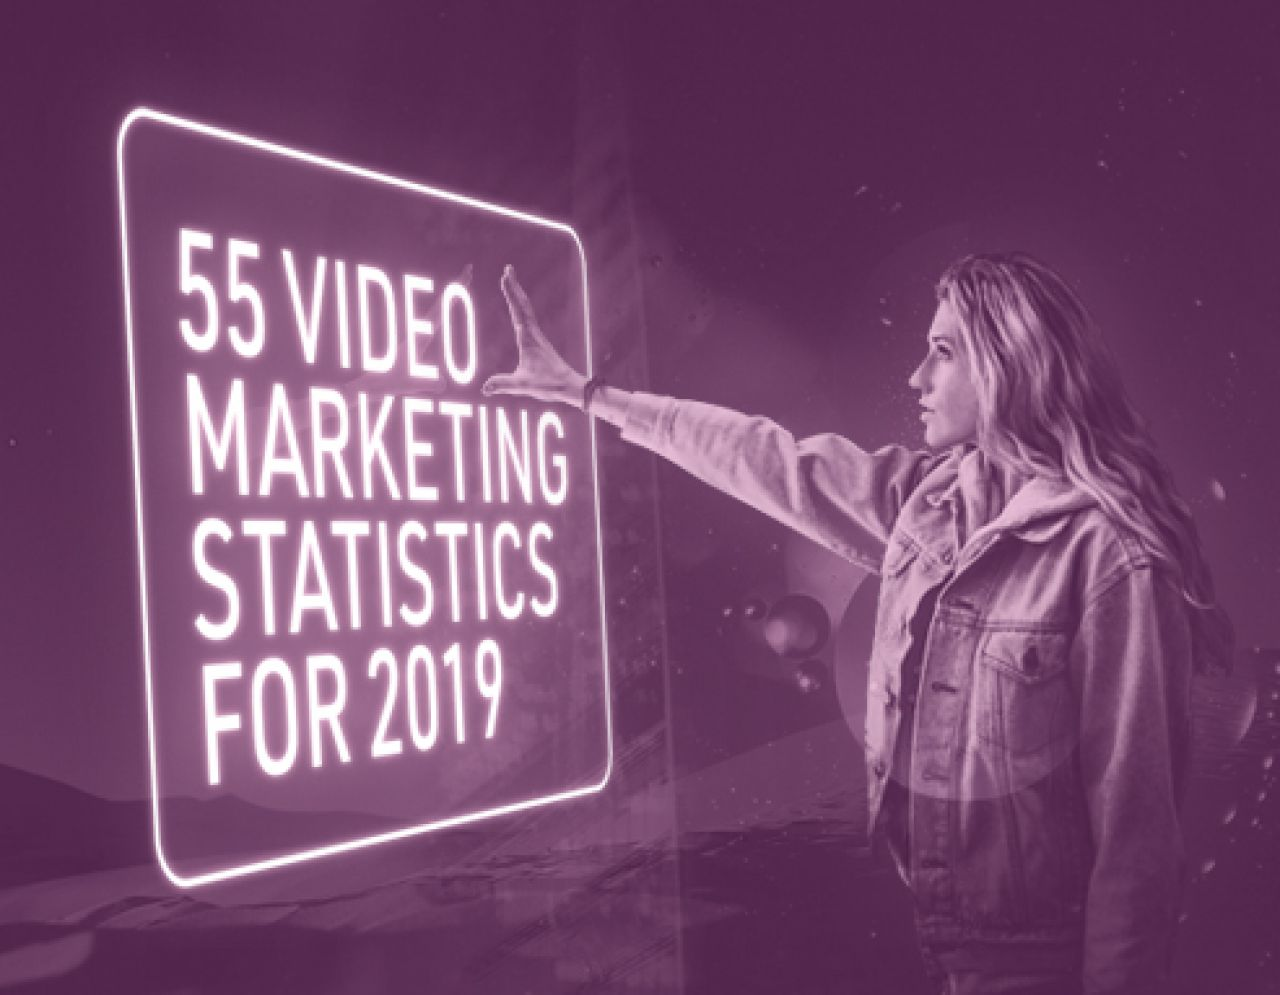 55 Video Marketing Statistics For 2019 | Biteable